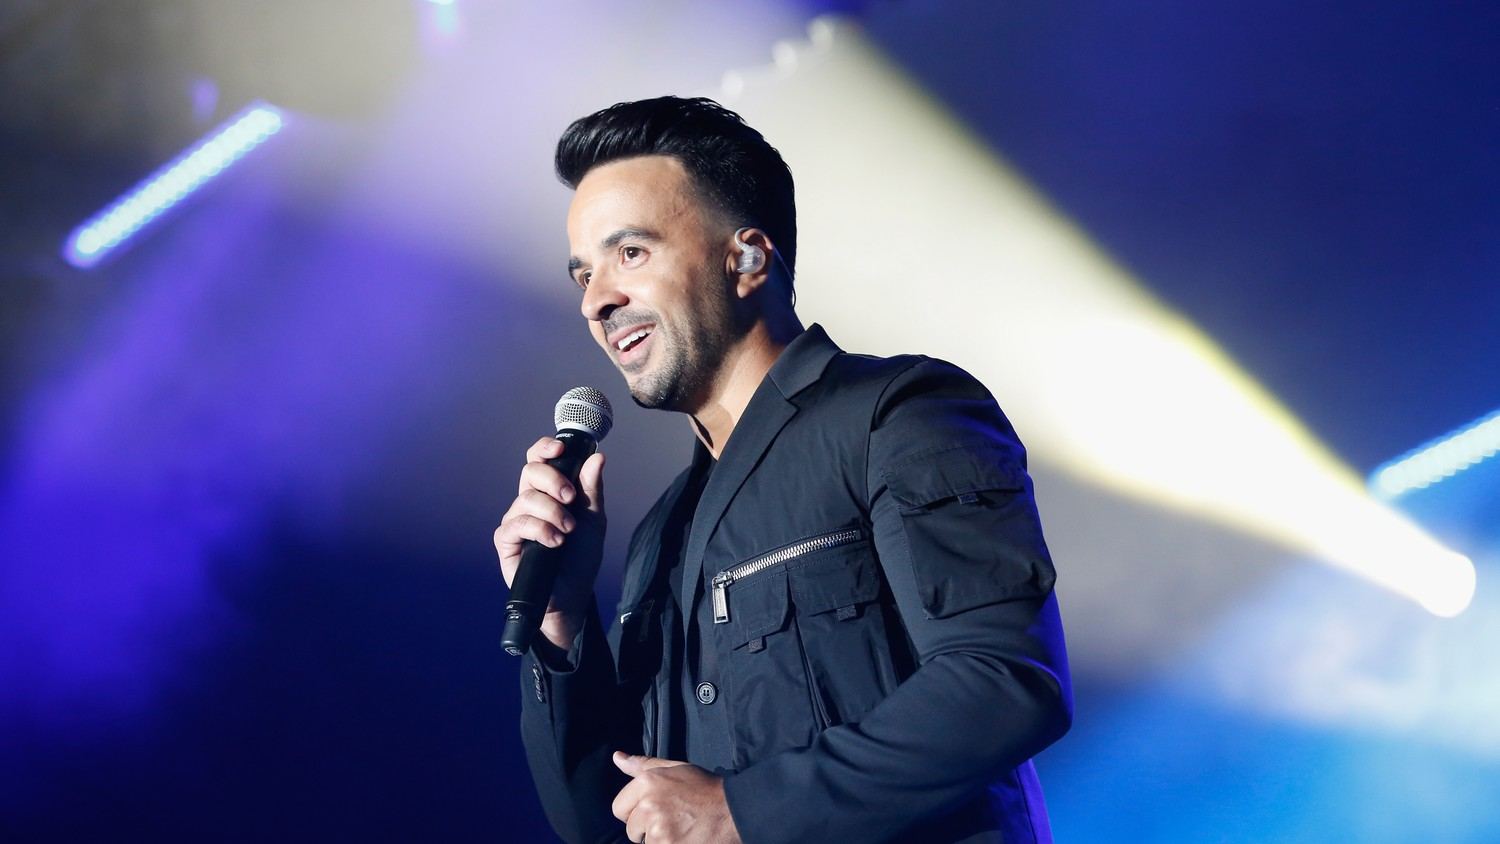 Luis Fonsi On La Voz & New Album